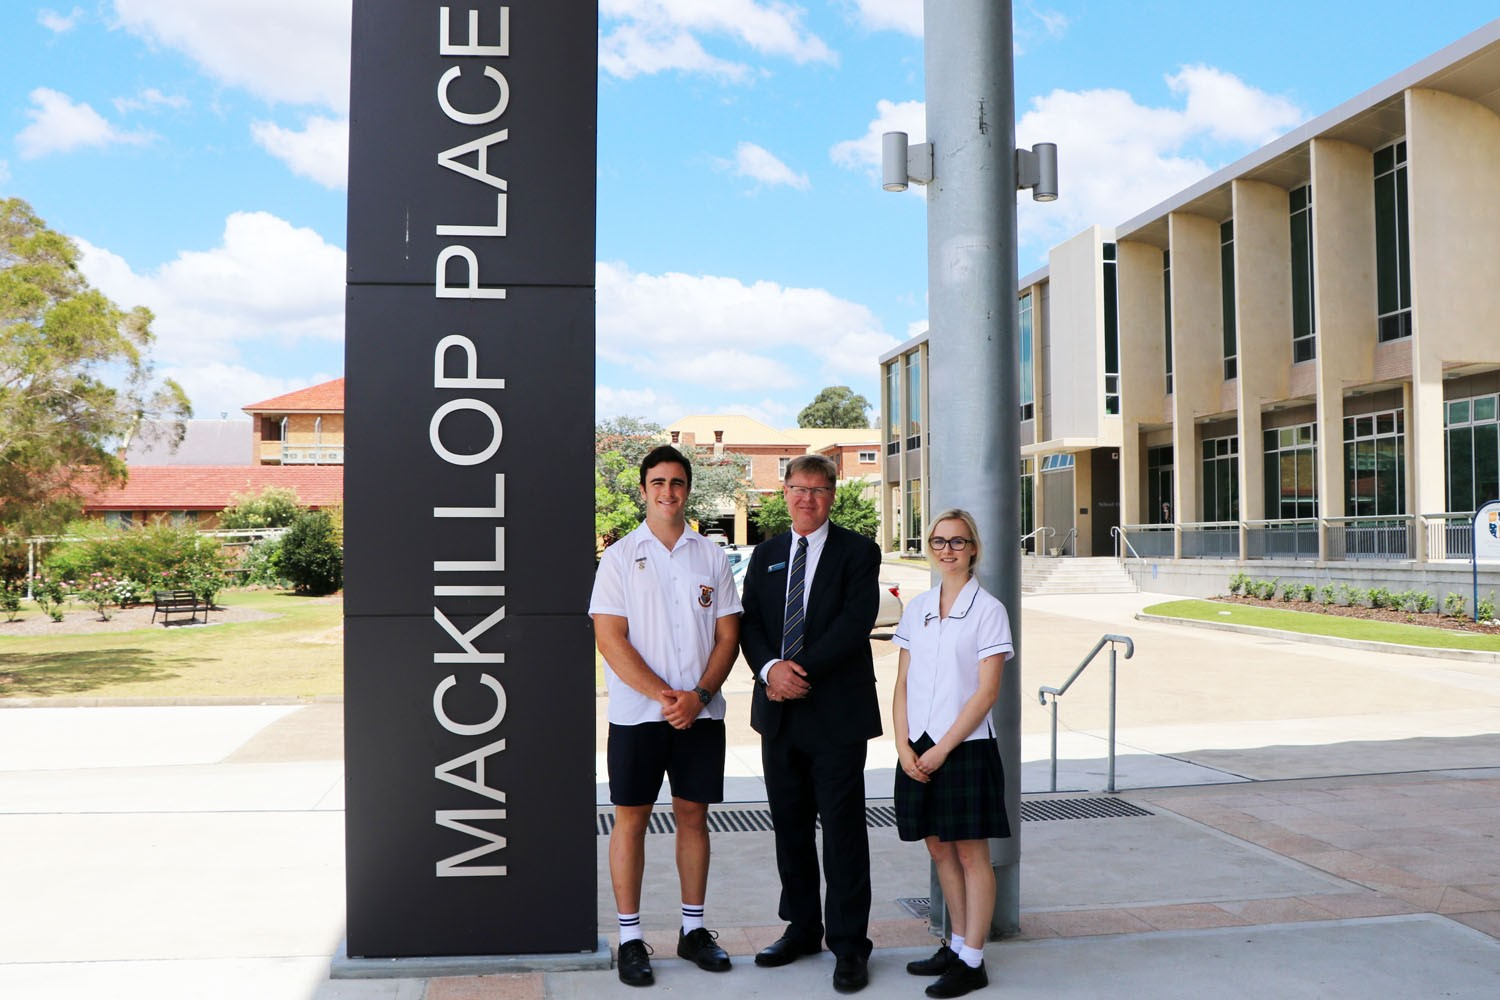 Image:Opening of MacKillop Place